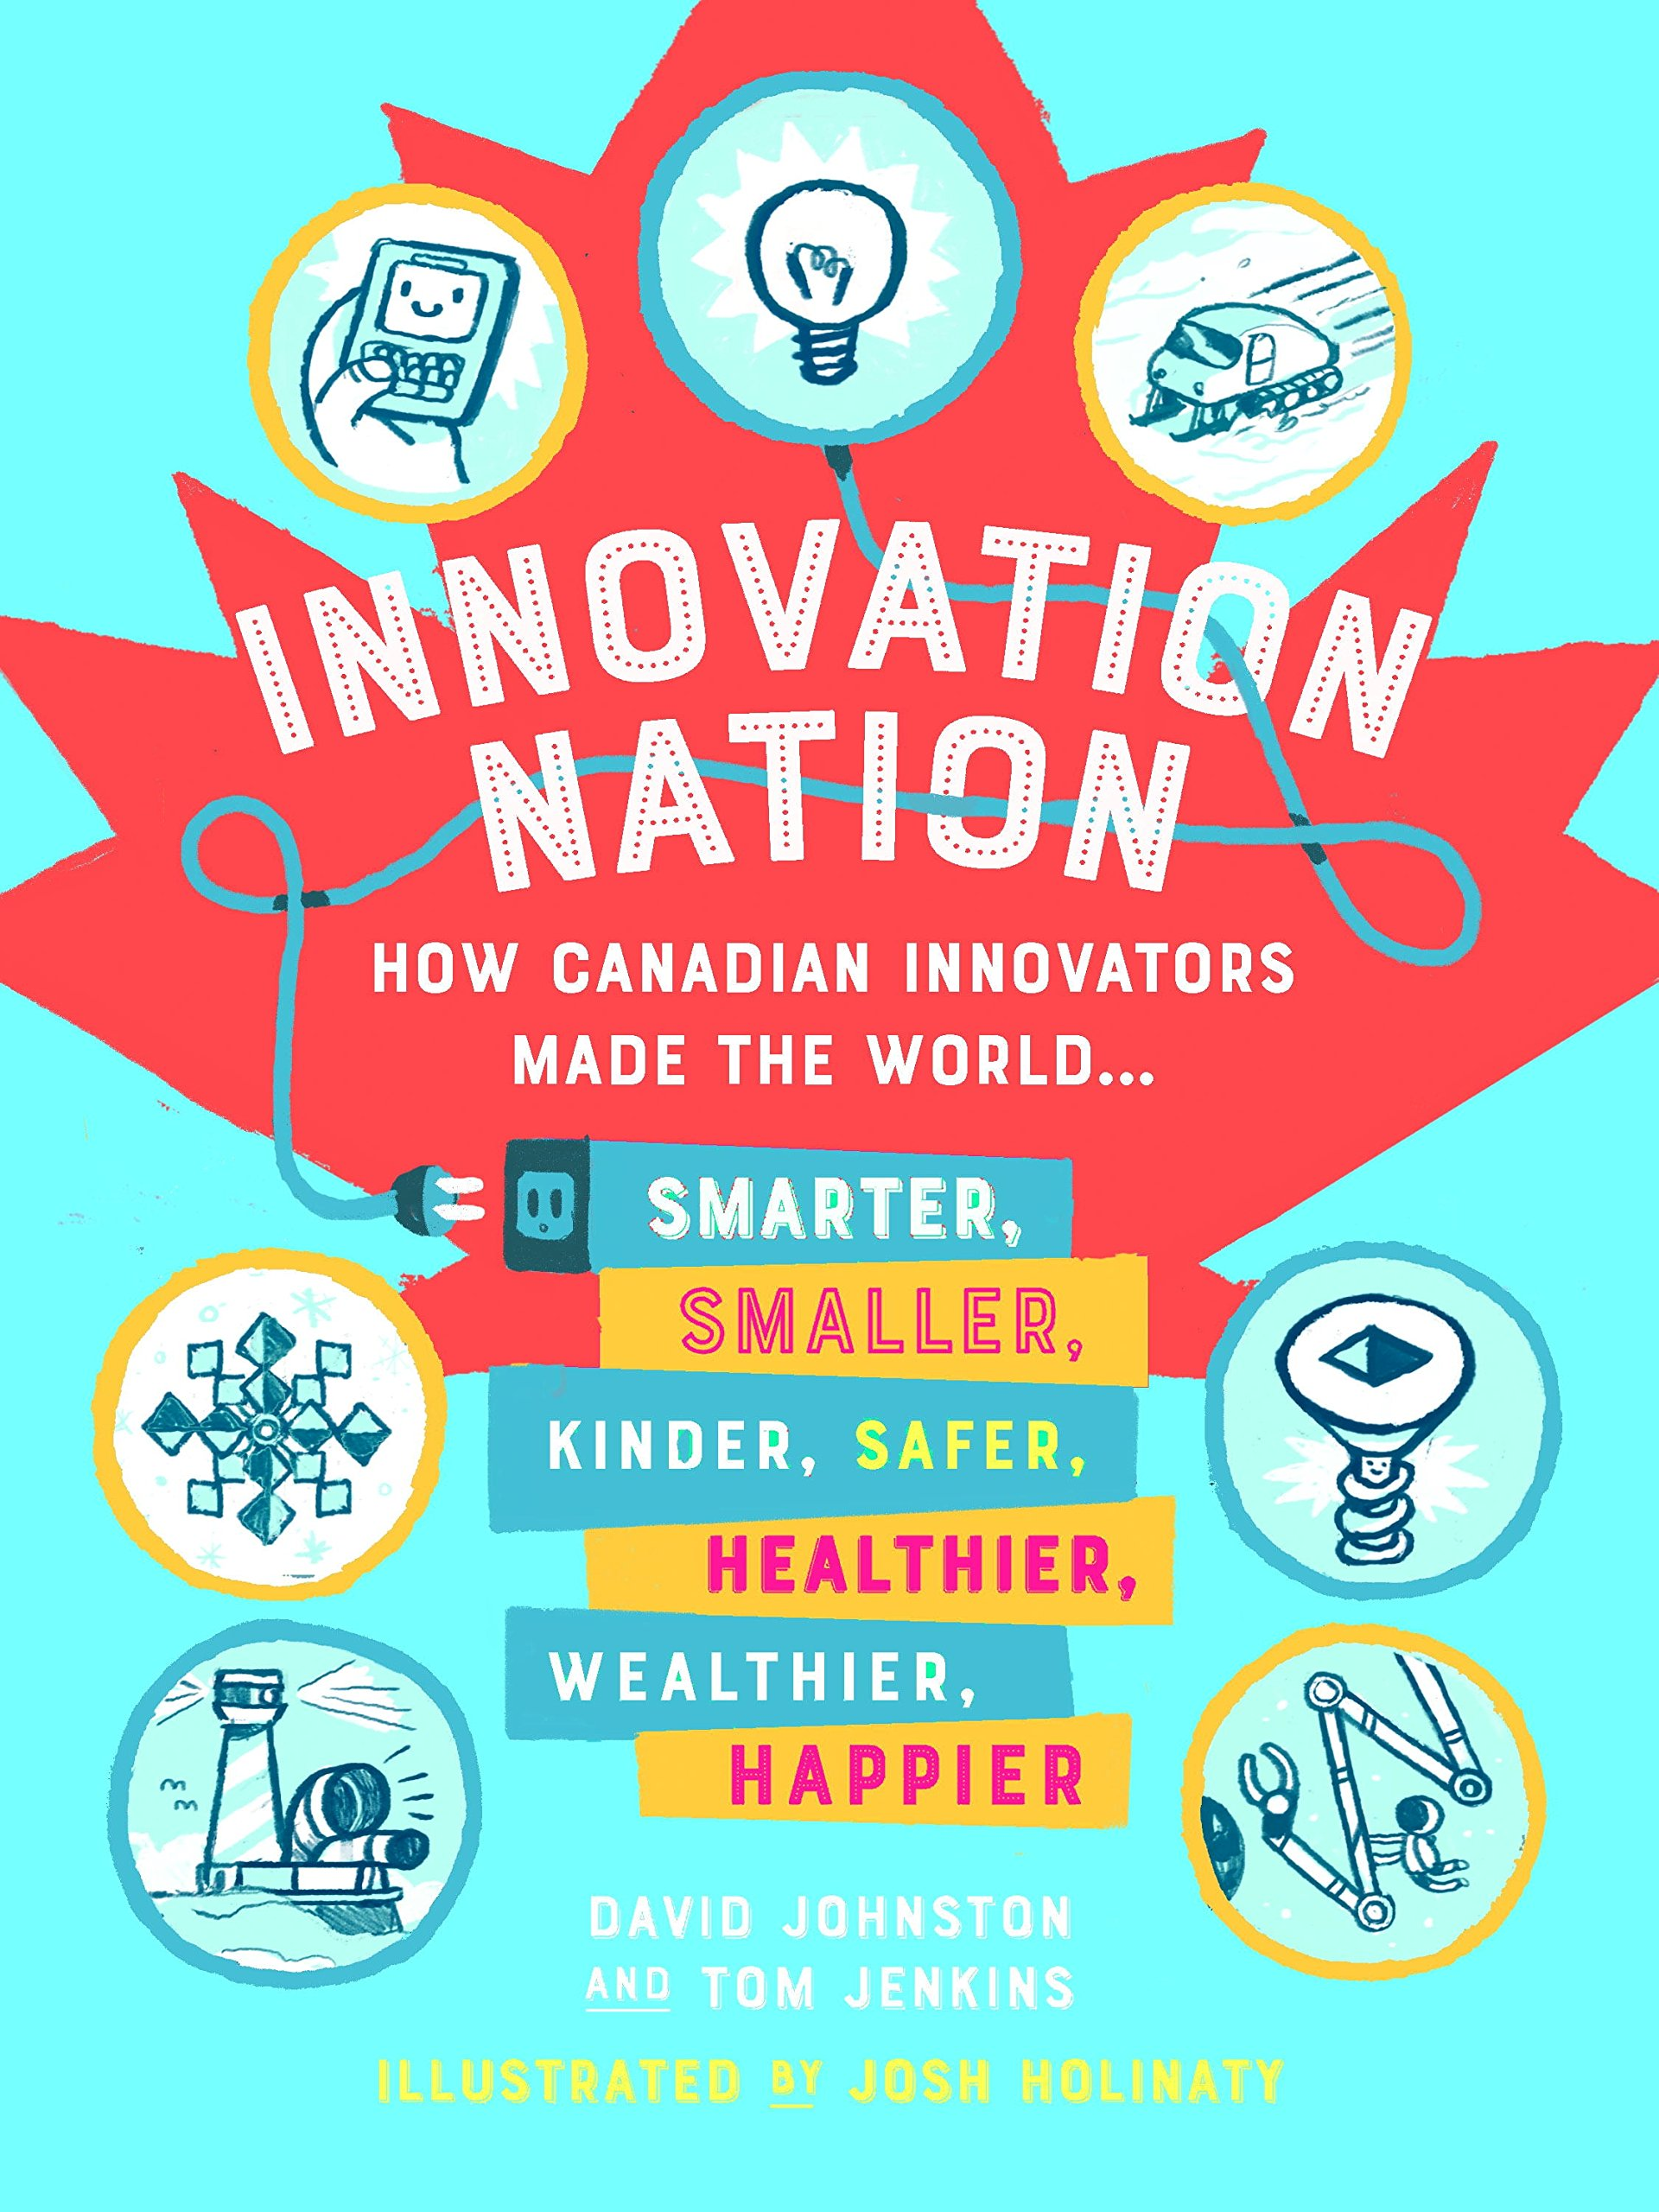 Innovation Nation: How Canadian Innovators Made the World Smarter, Smaller, Kinder, Safer, Healthier, Wealthier, Happier